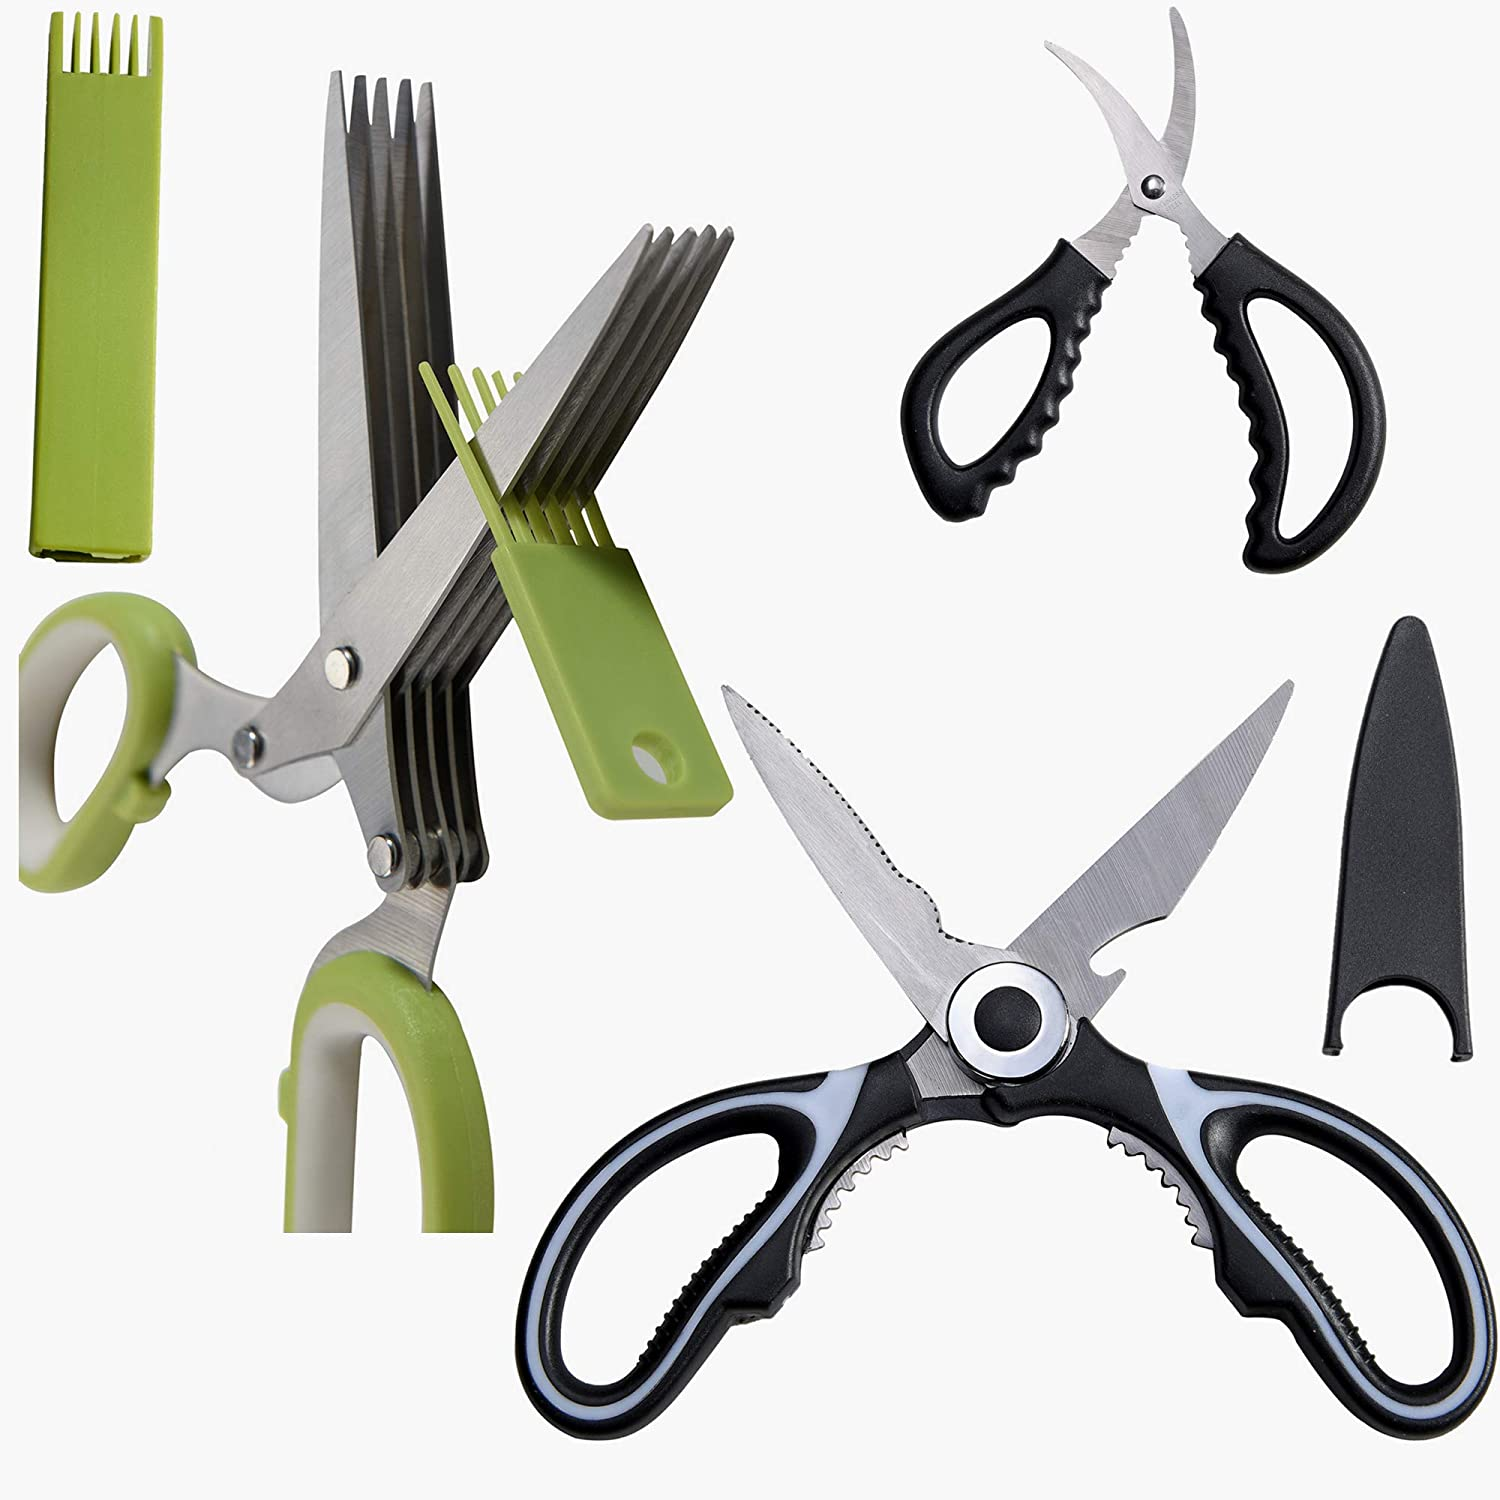 3 PCS Suit 5 Blade(Layer)Herb Scissors, Clever Food Cutter Scissors,Heavy Duty Kitchen Scissors For General Use